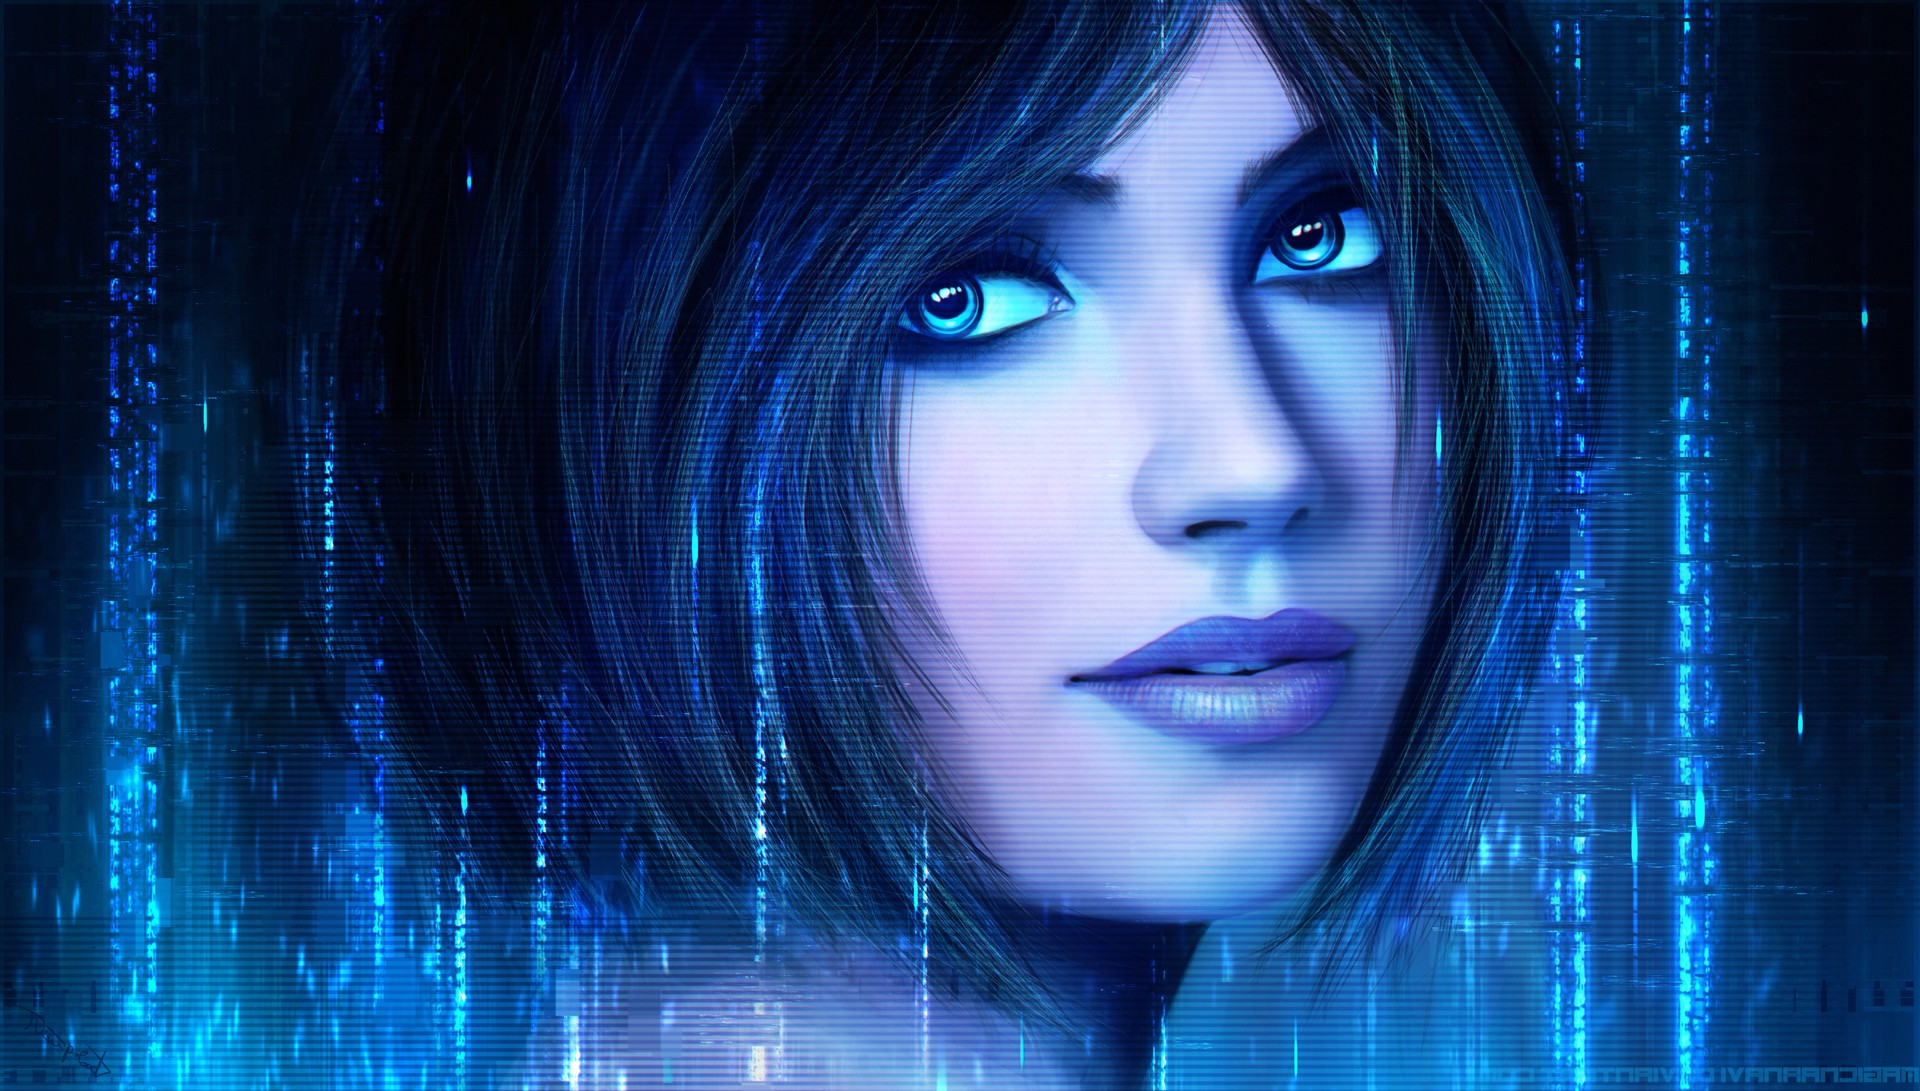 cortana wallpaper2 - photo #4